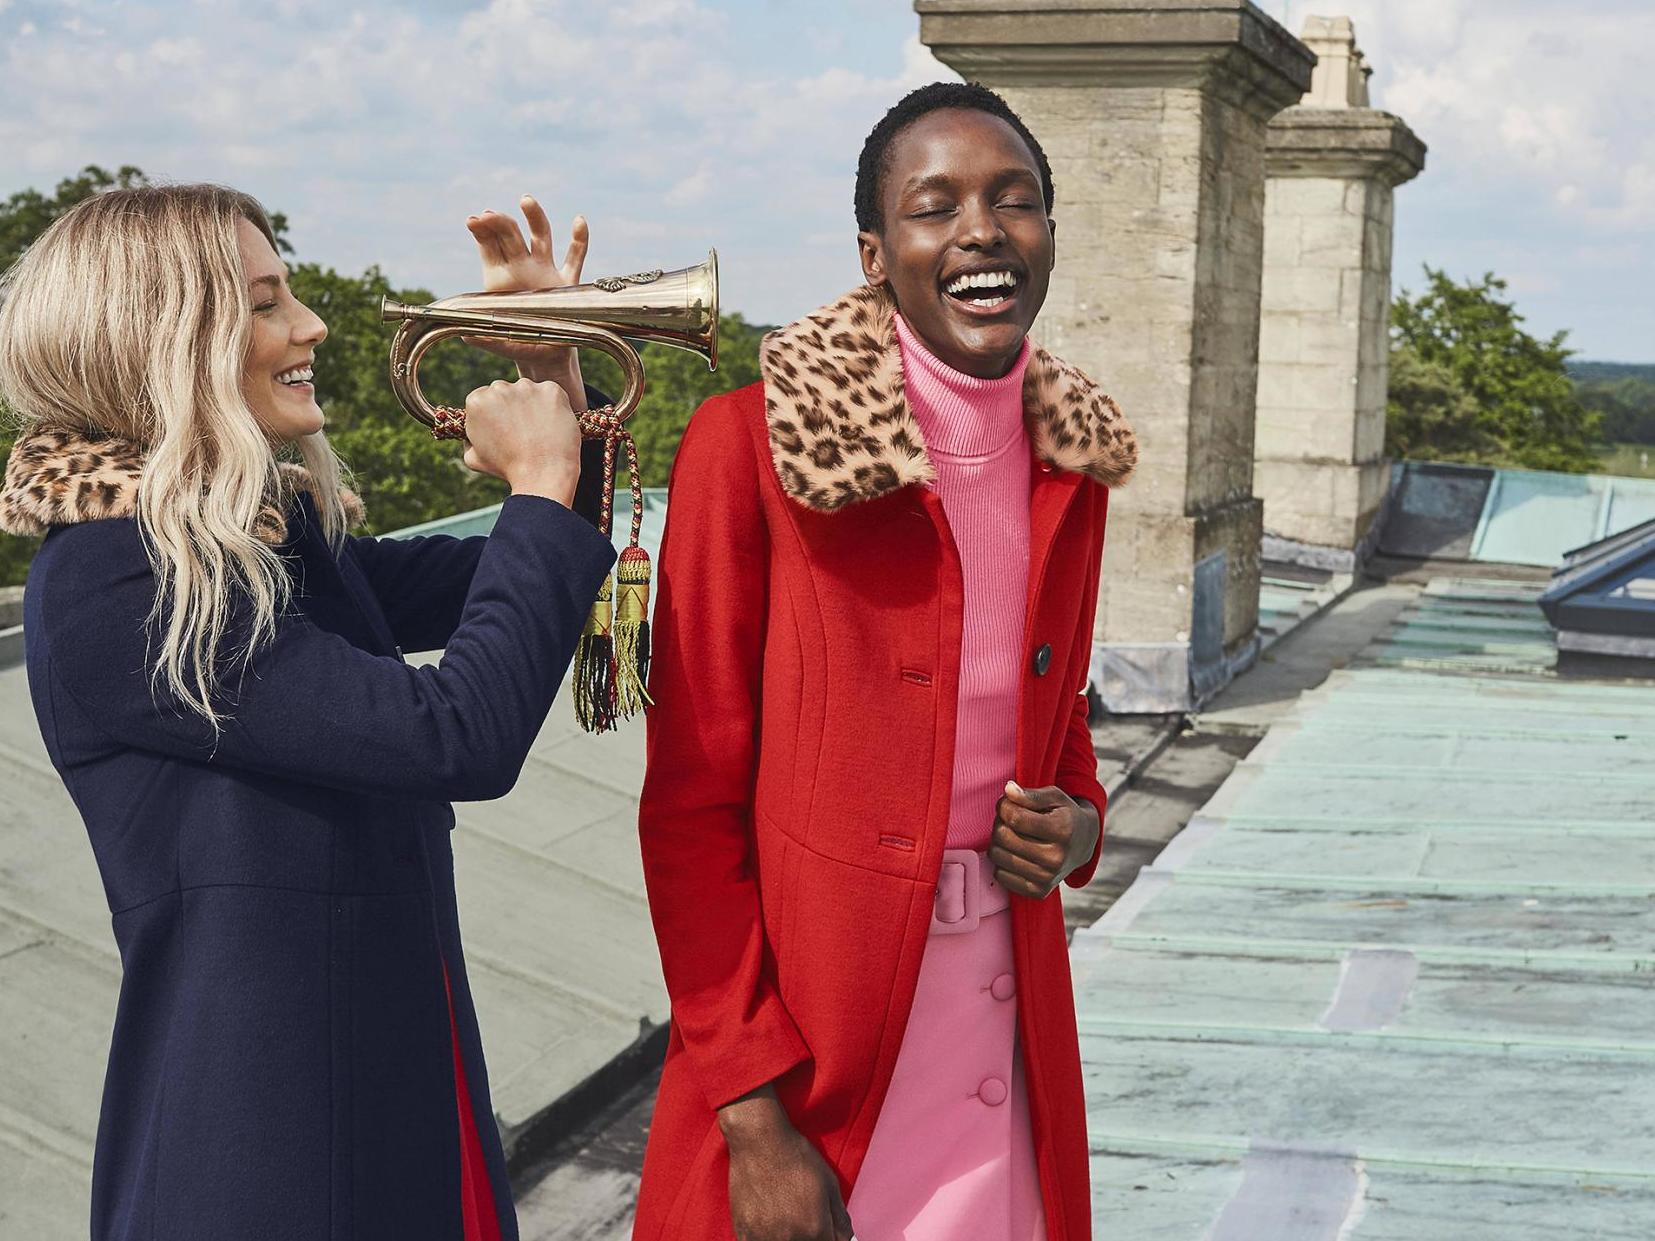 Boden launches coat collection inspired by 'remarkable' historical British women